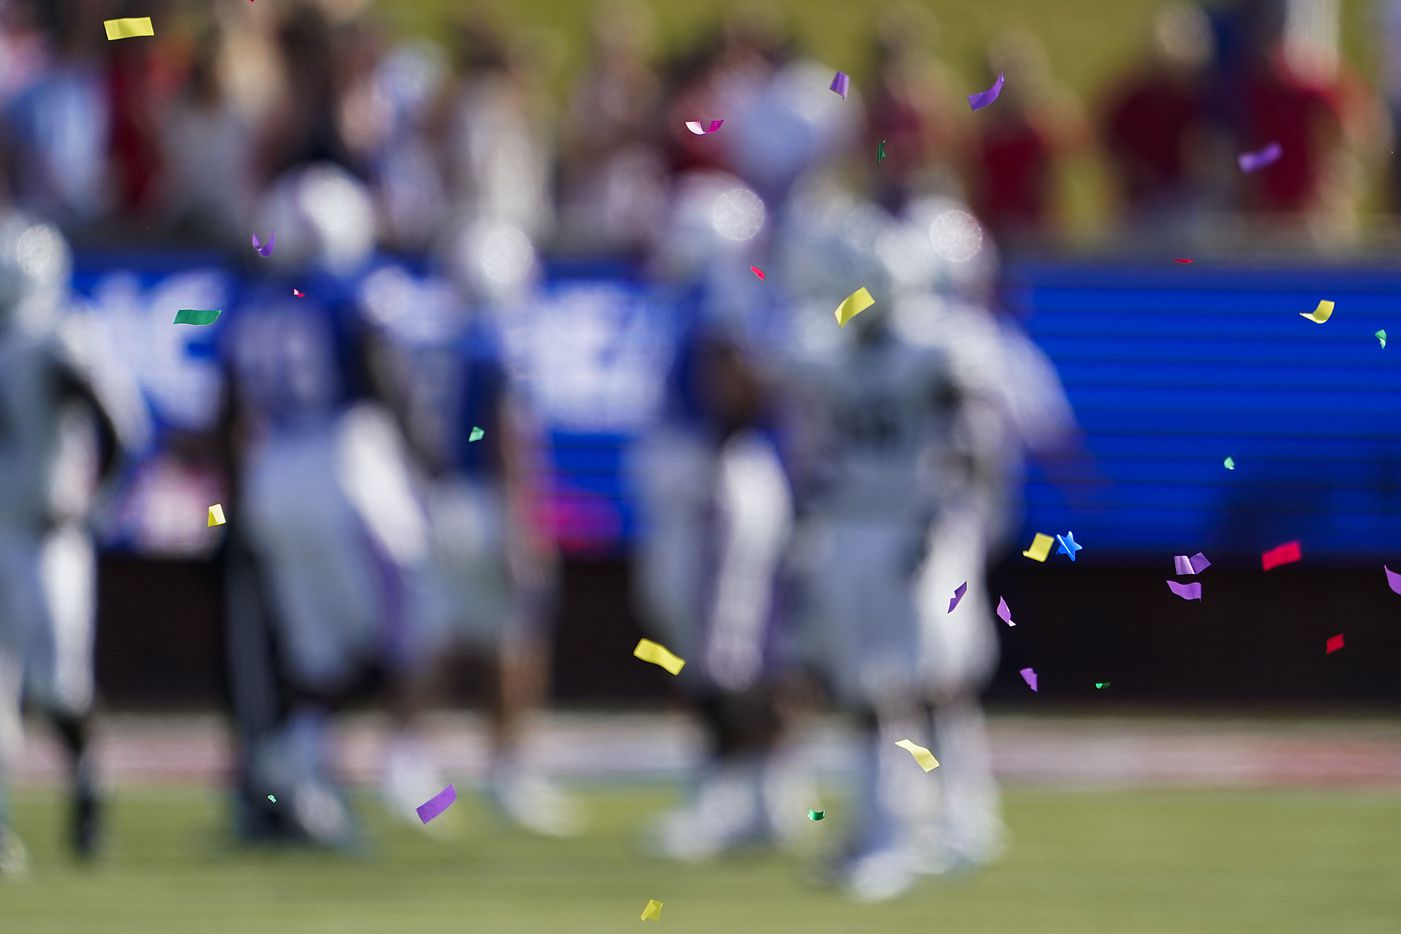 Confetti from the celebration of an interception by SMU cornerback Brandon Crossley floats over the field during the first half of an NCAA football game against Memphis at Ford Stadium on Saturday, Oct. 3, 2020, in Dallas.